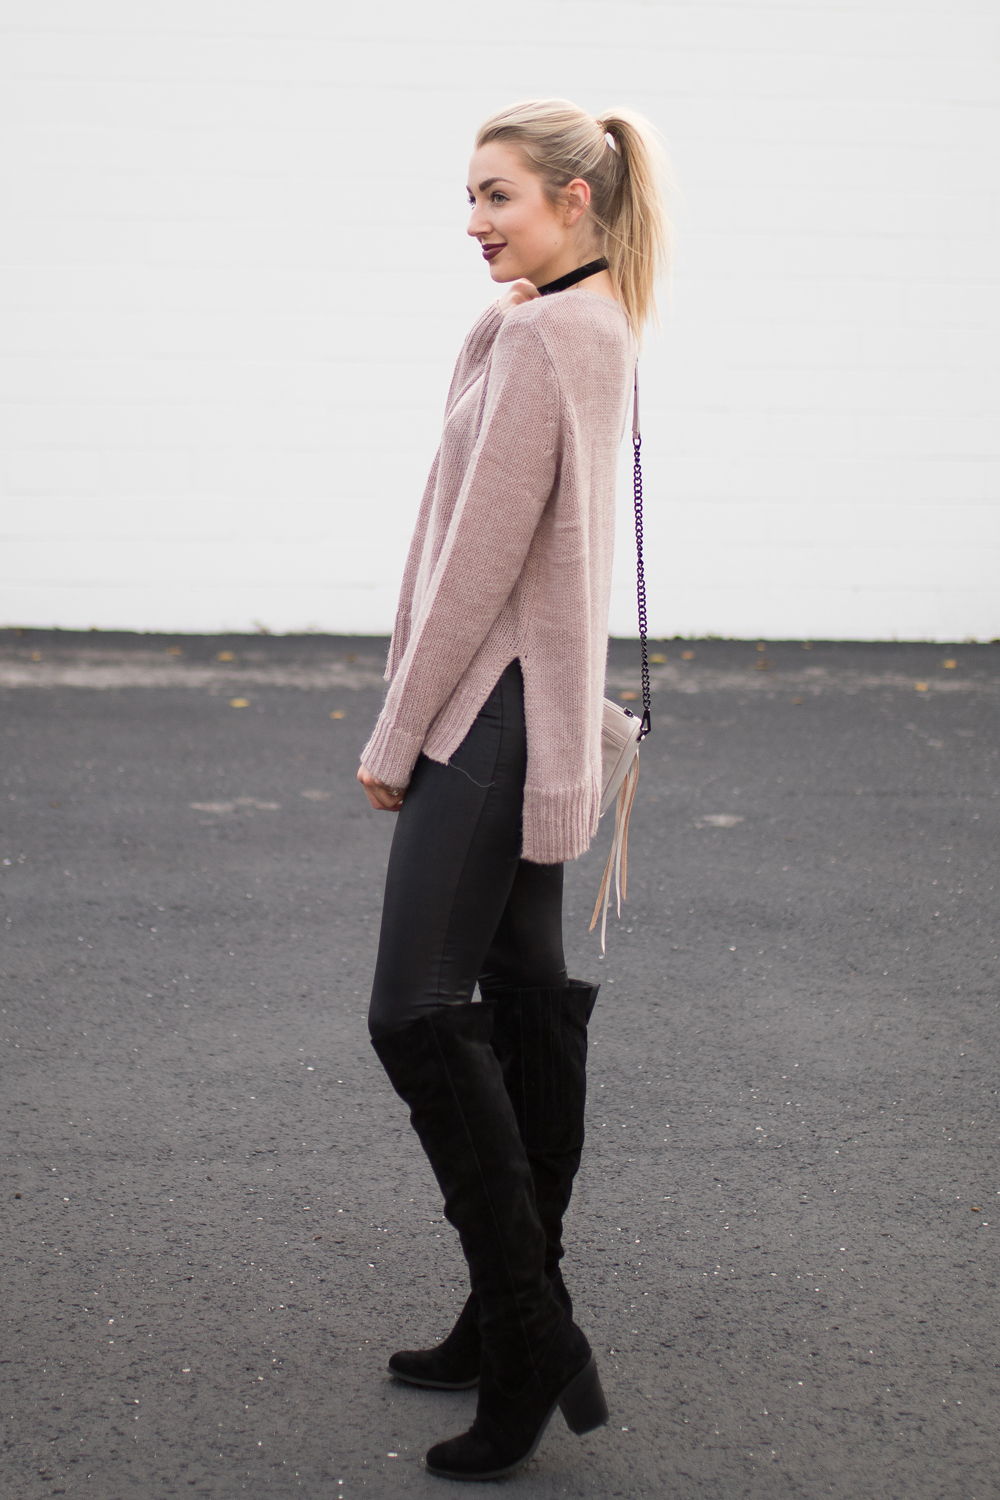 Long sweater under $30